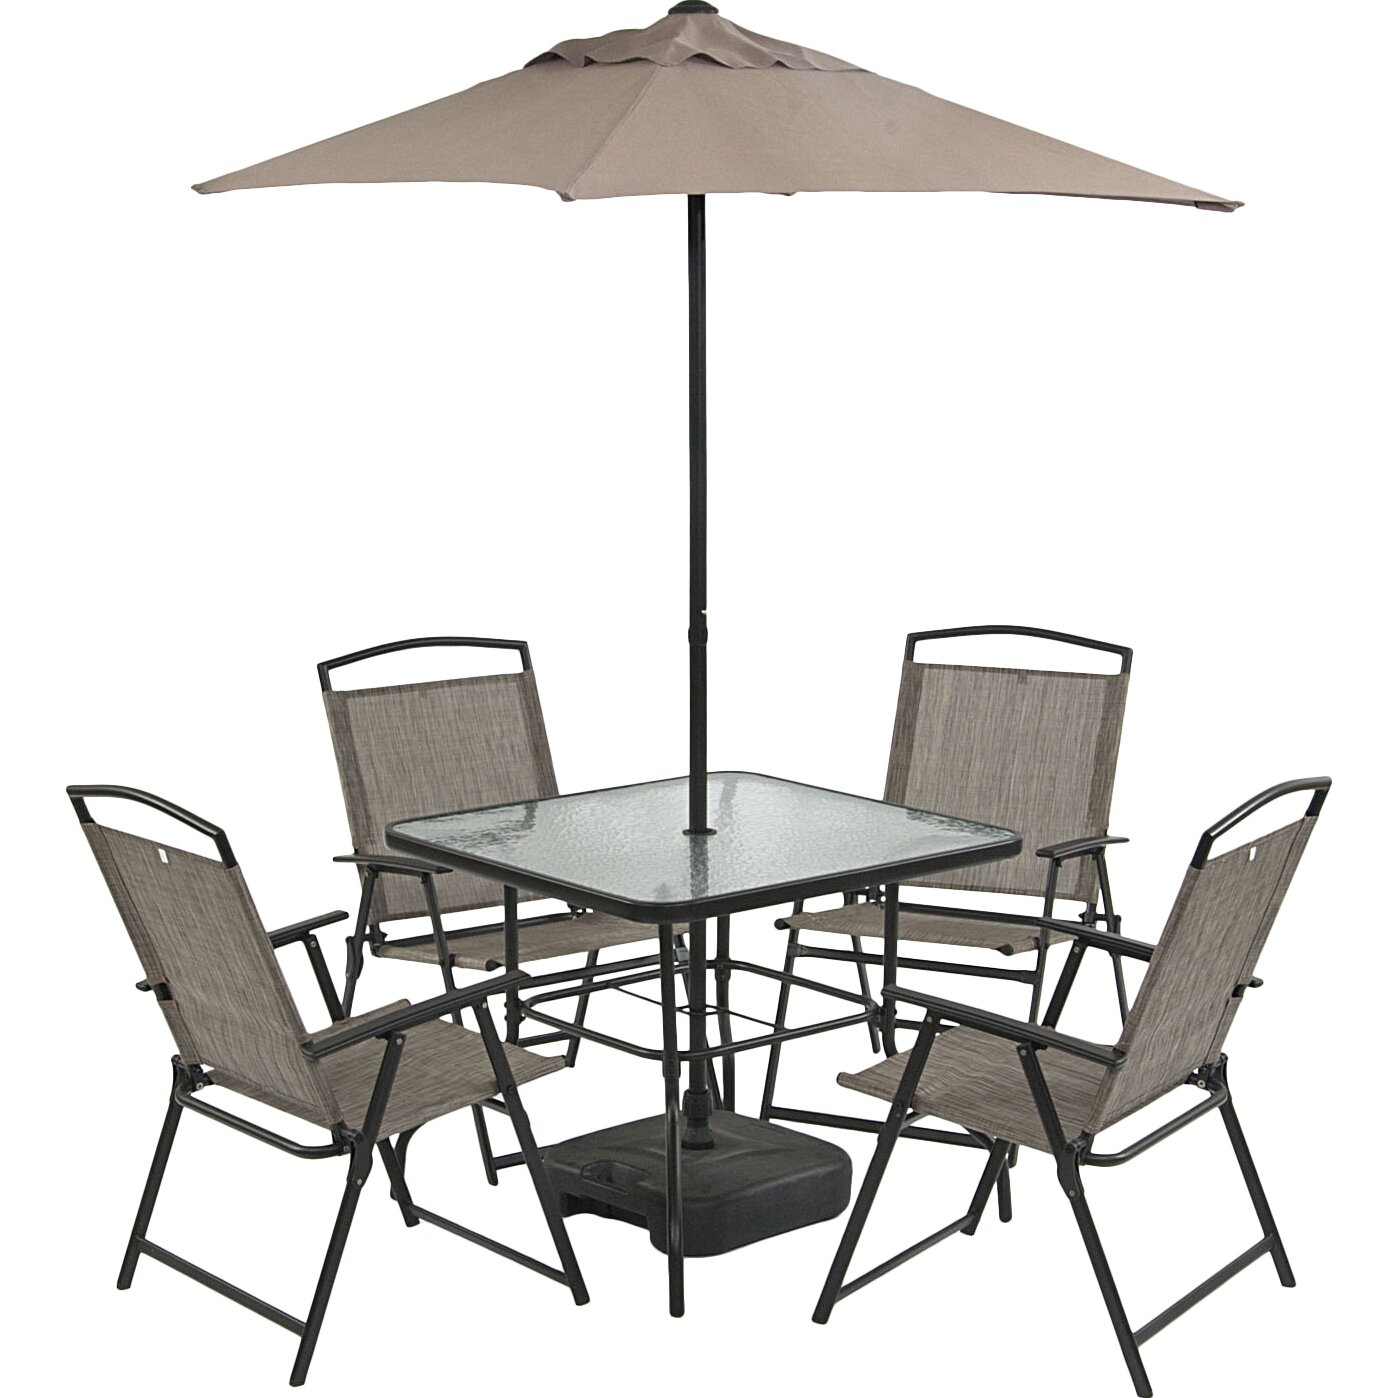 SunTime Outdoor Living Oasis 7 Piece Dining Set & Reviews ... on Suntime Outdoor Living id=41810